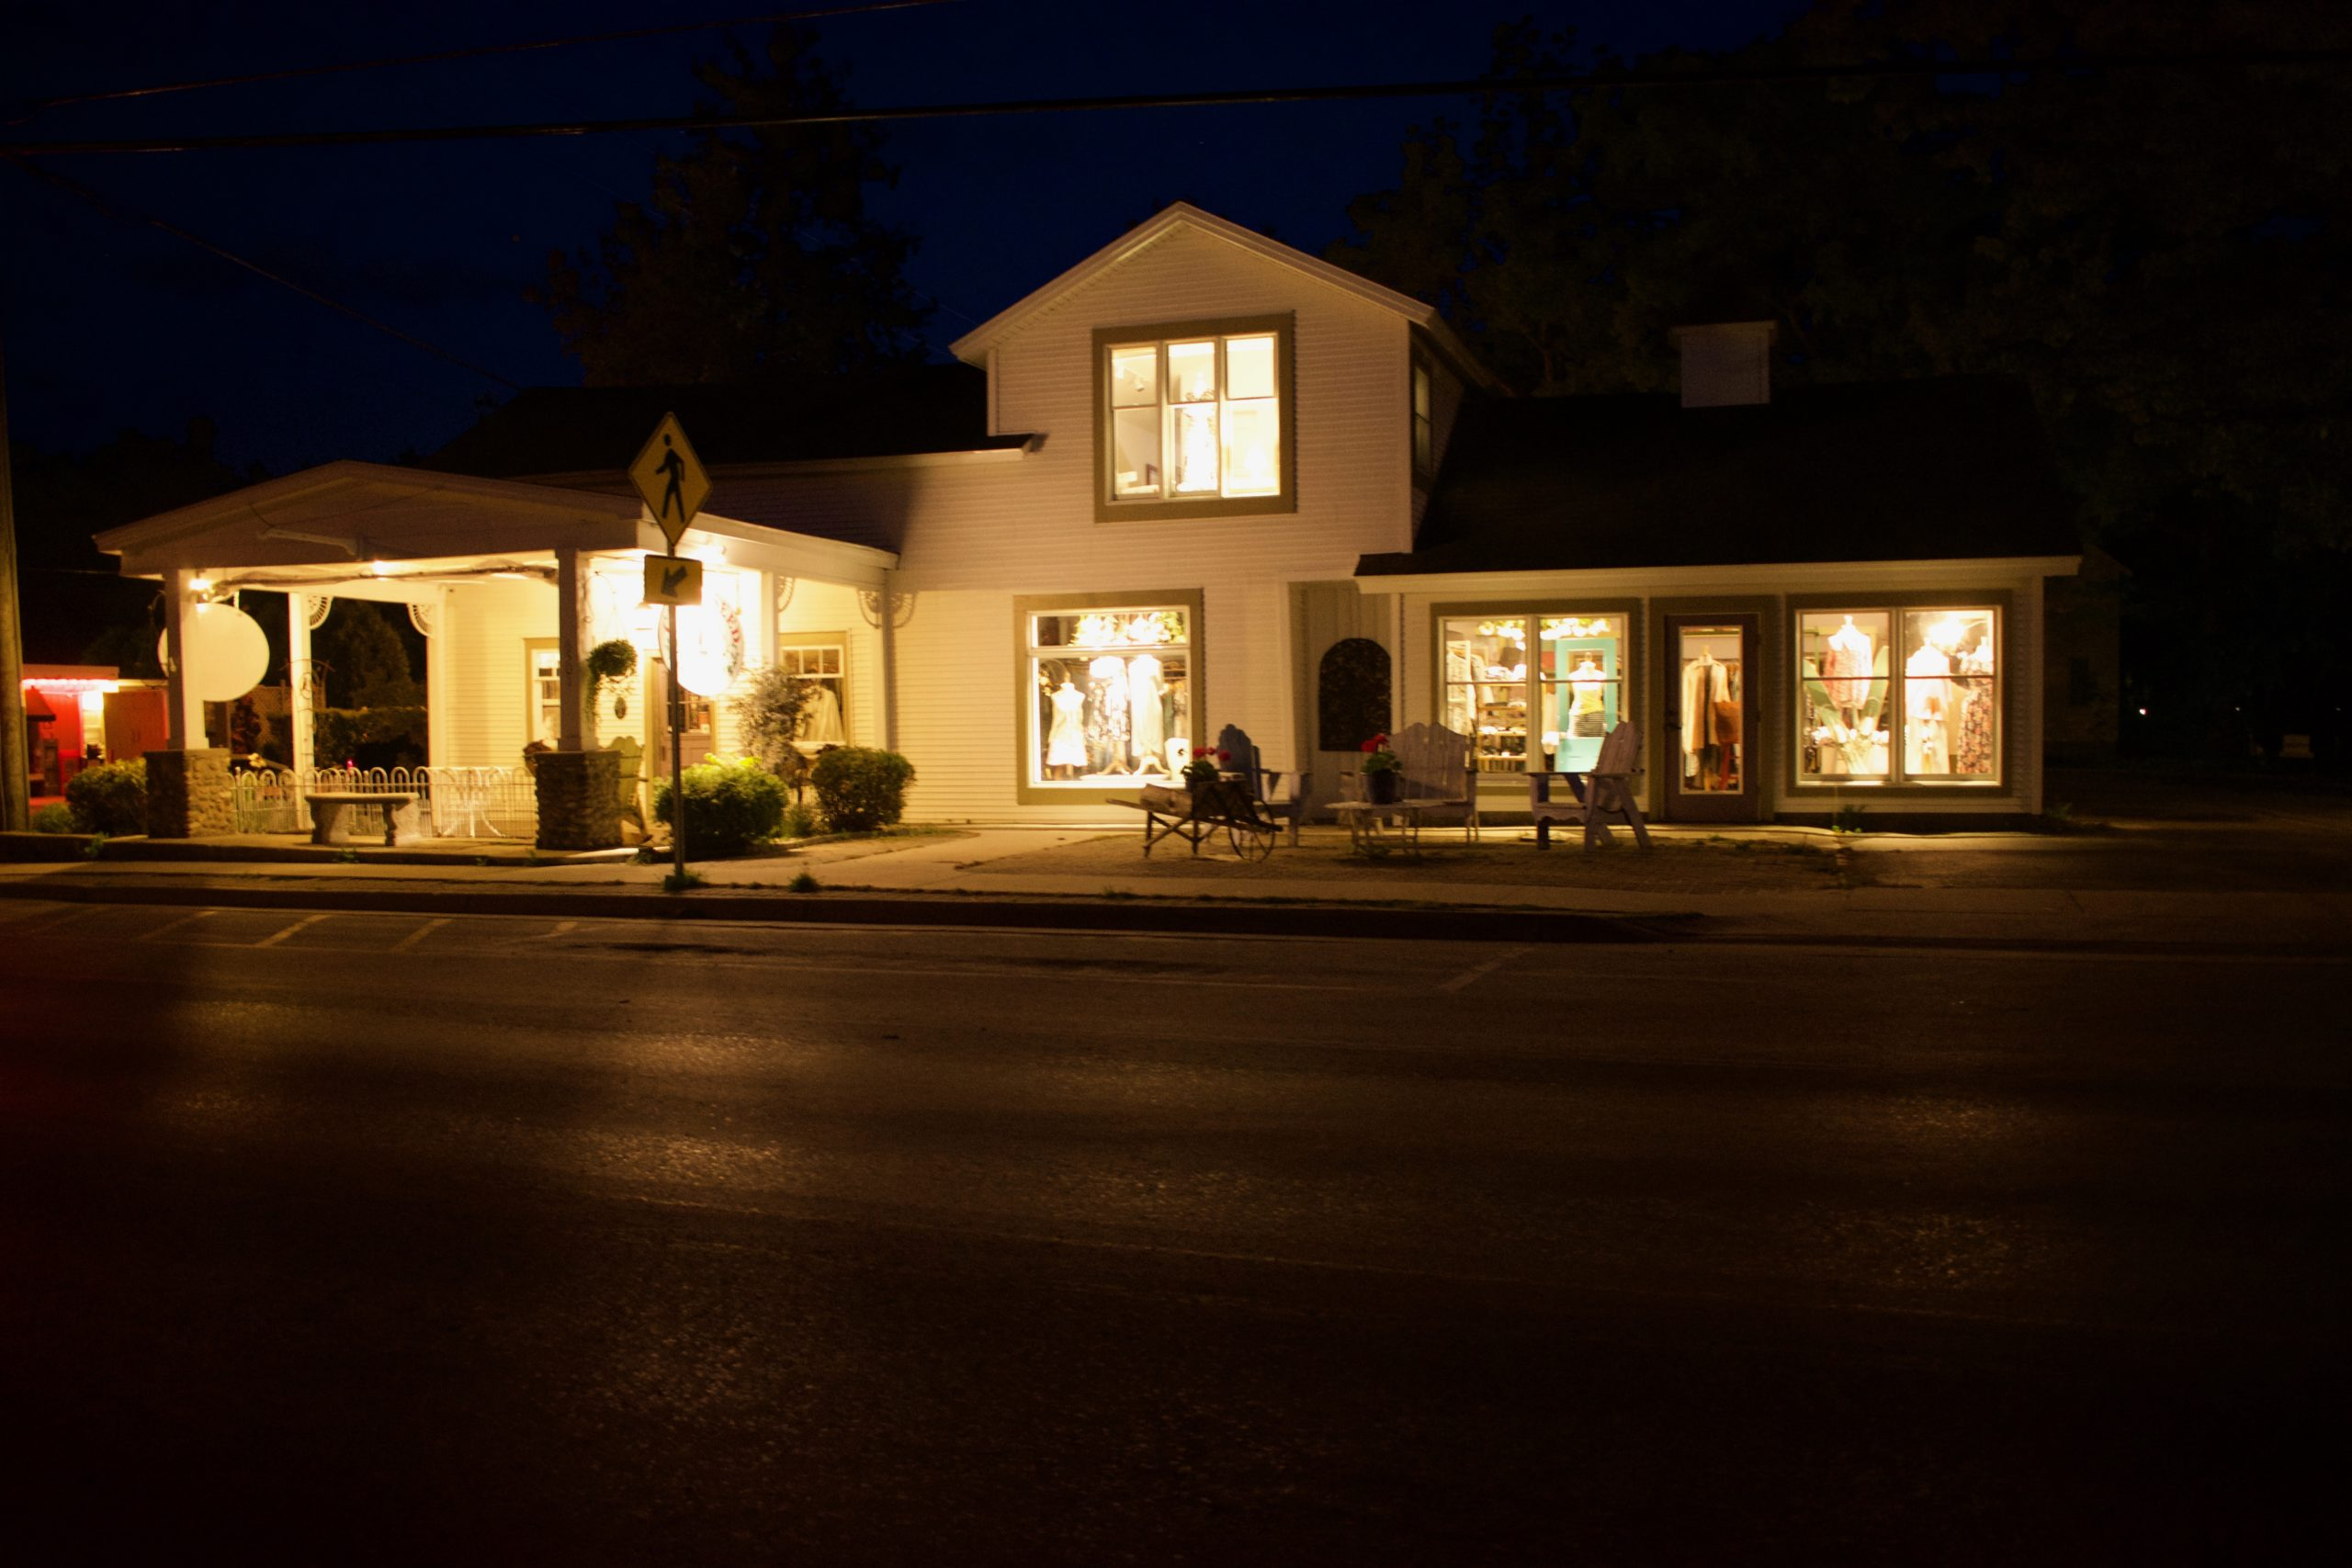 photo at night from street of Cottonseed Apparel